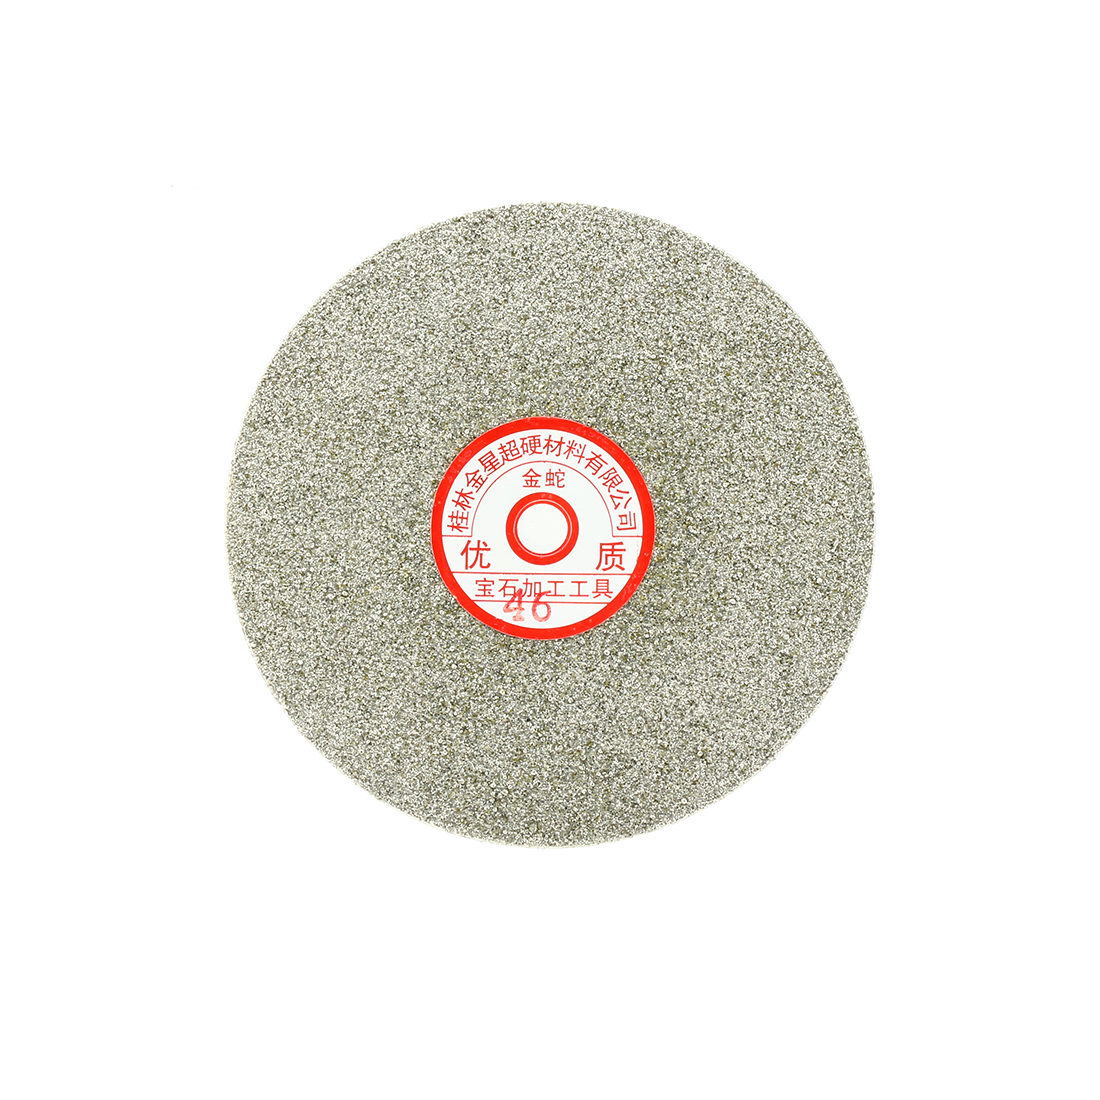 6-inch Grit 46 Diamond Coated Flat Lap Wheel Grinding Sanding Polishing Disc